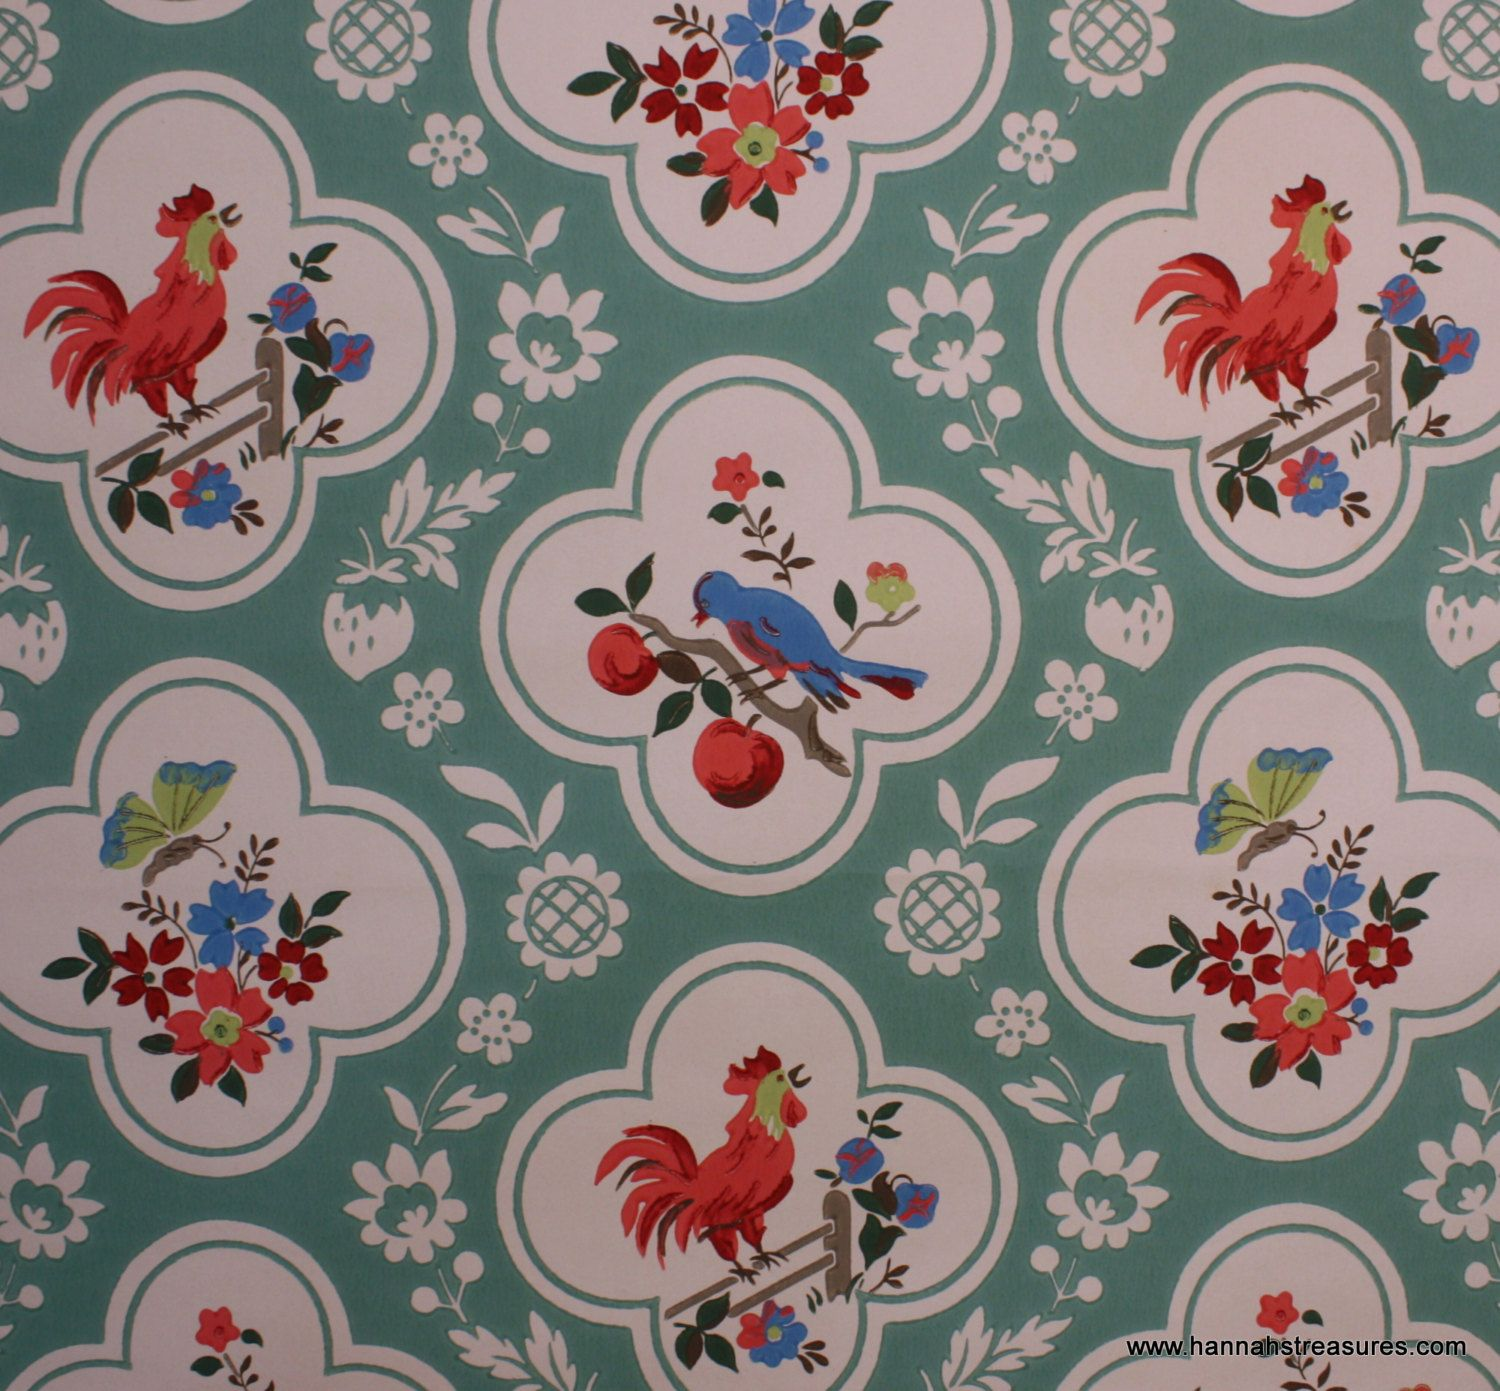 1940 S Vintage Wallpaper Red And Aqua With Birds Cherries Roosters